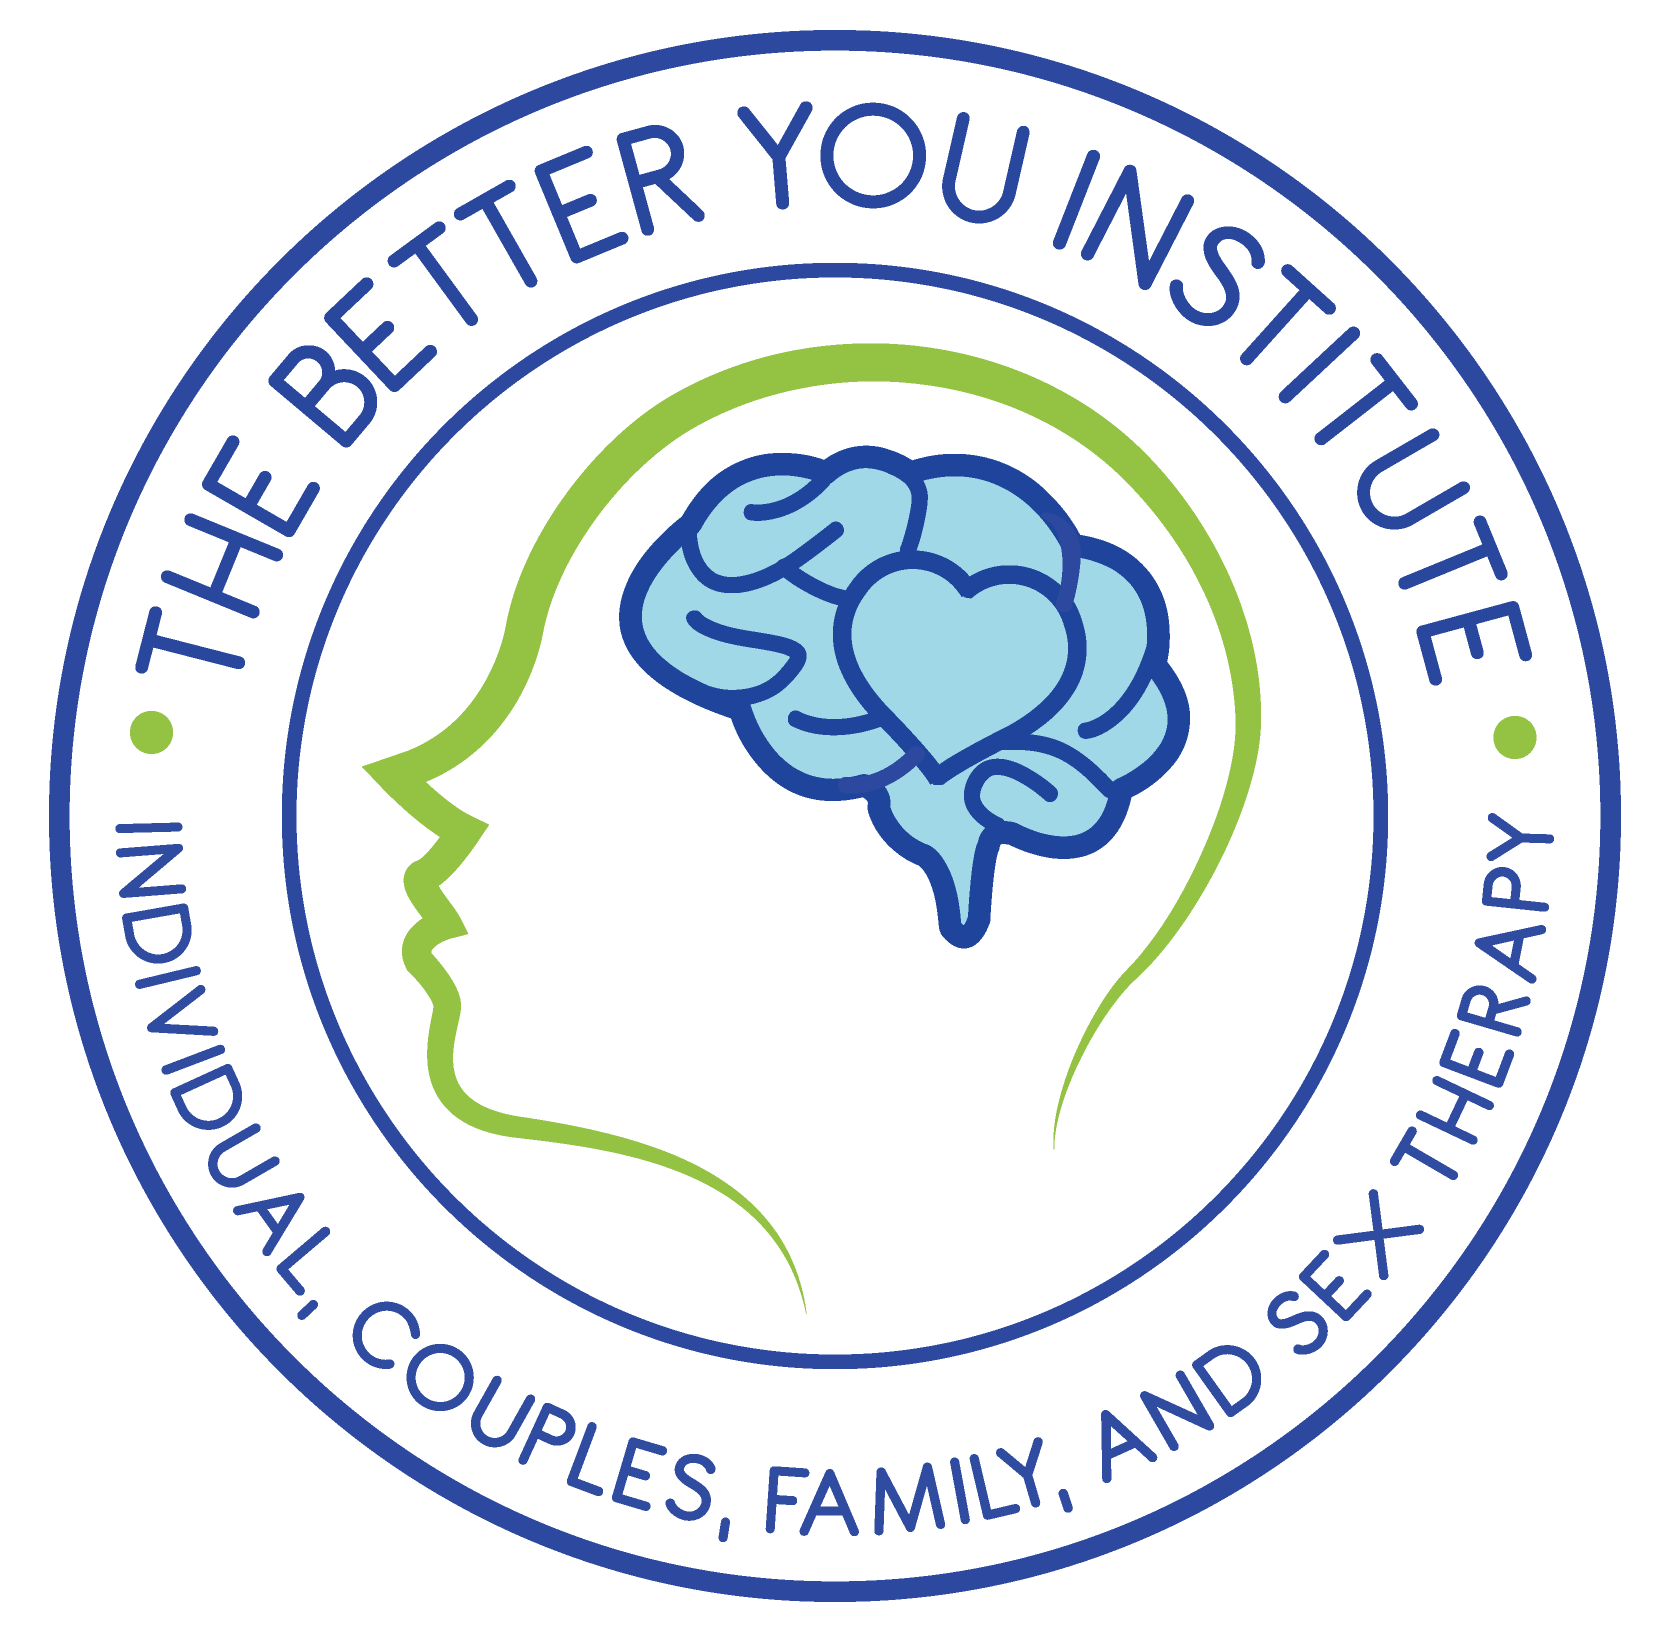 The Better You Institute, LLC